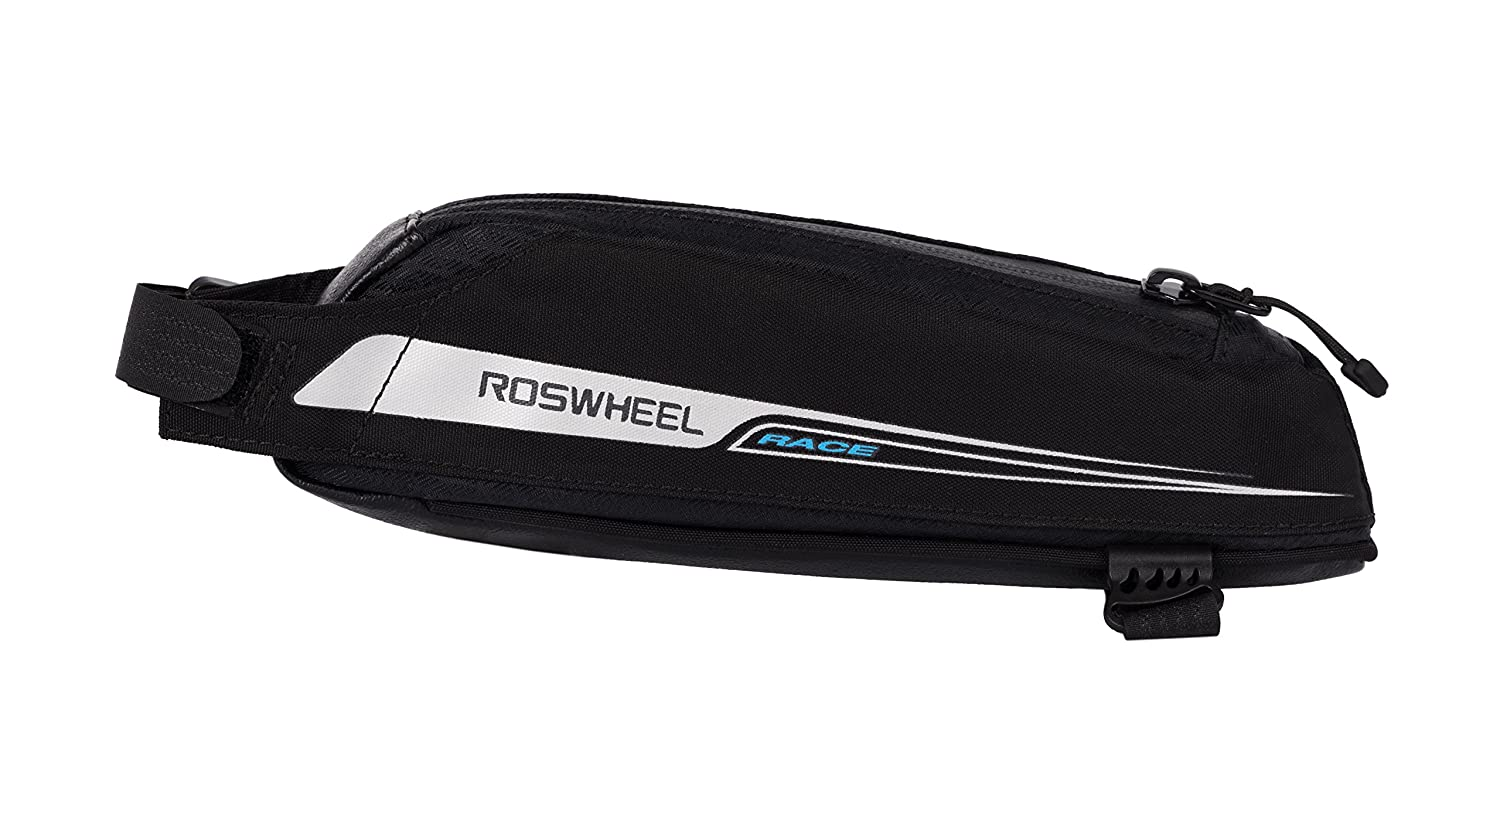 eeb2f081846 Roswheel Race Series 121343 Bike Frame Bag Bicycle Top Tube Pouch Cycling  Accessories Pack, 0.4l Capacity: Amazon.co.uk: Sports & Outdoors